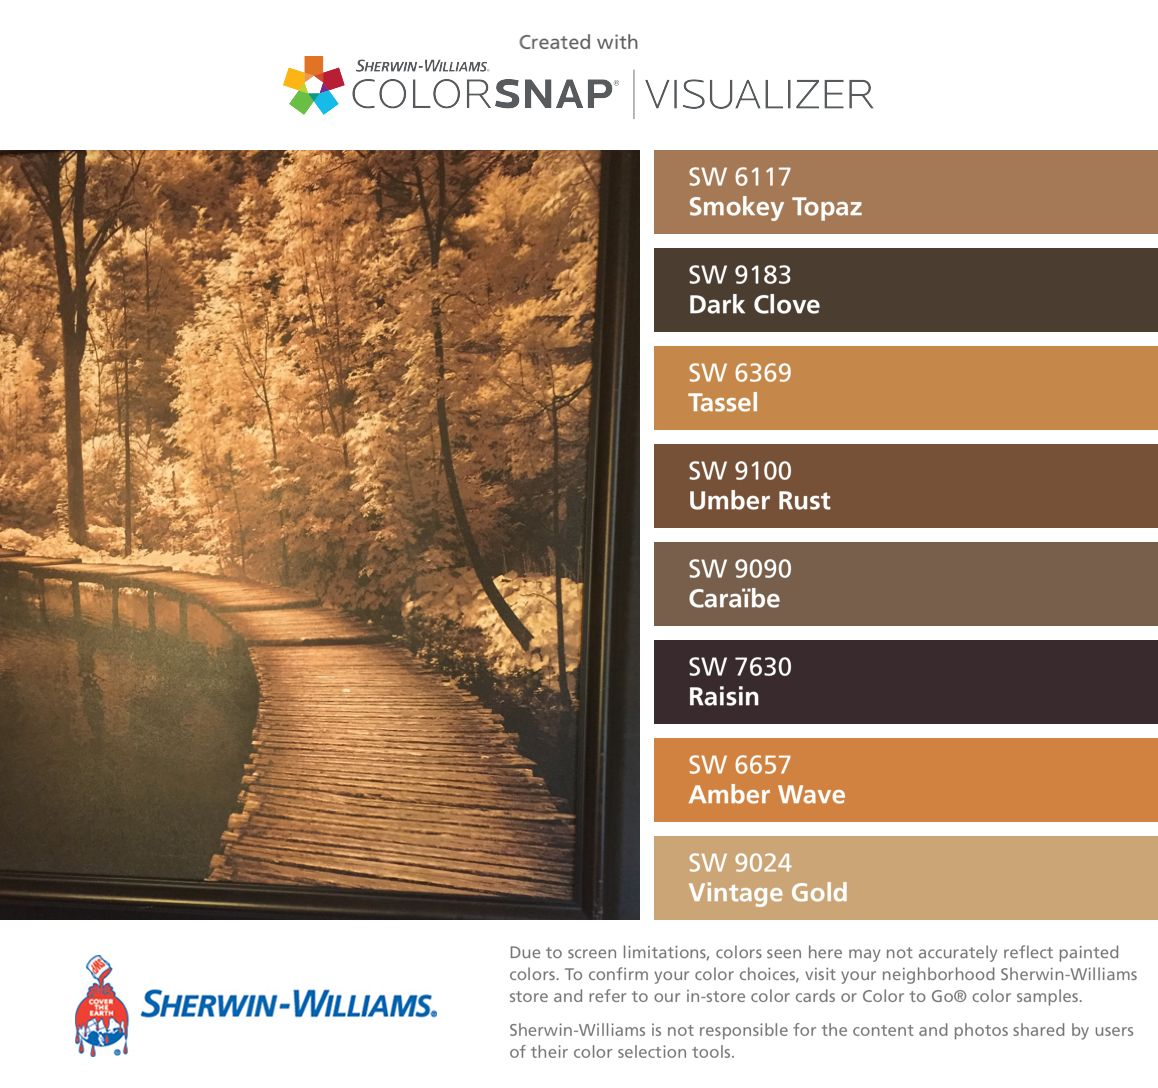 I Found These Colors With Colorsnap Visualizer For Iphone By Sherwin Williams Smokey Topaz Sw 6117 Dark Clove 9183 Tel 6369